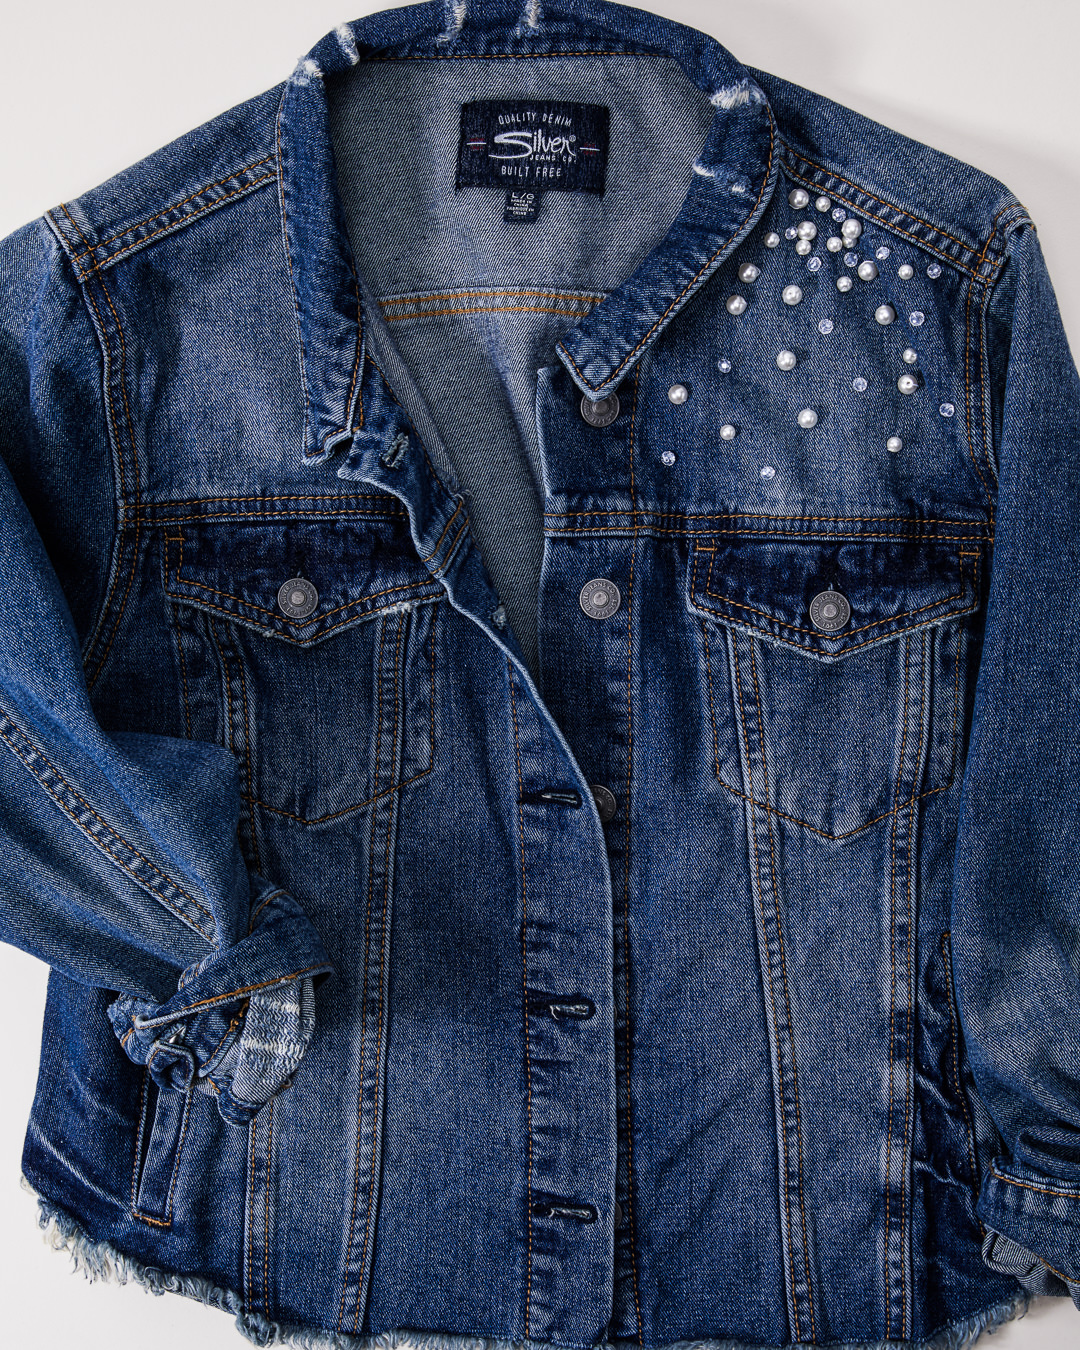 pearl-embellishment-denim-diy-silver-jeans-co